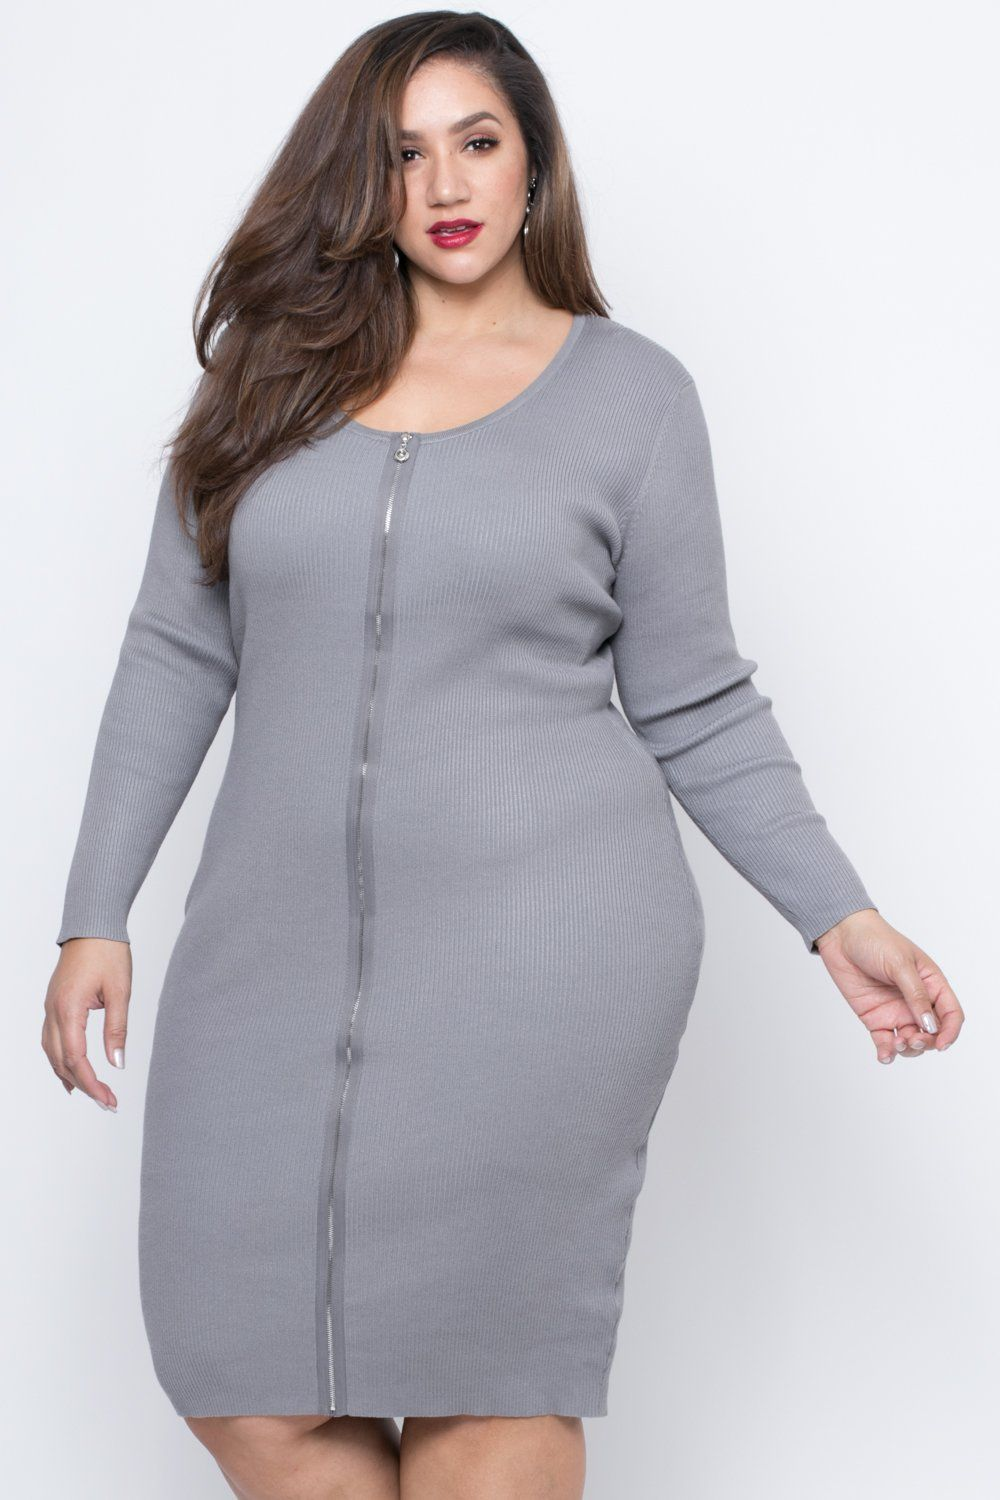 bb0be04fa8 Plus Size Zip Up Sweater Dress - Grey in 2019